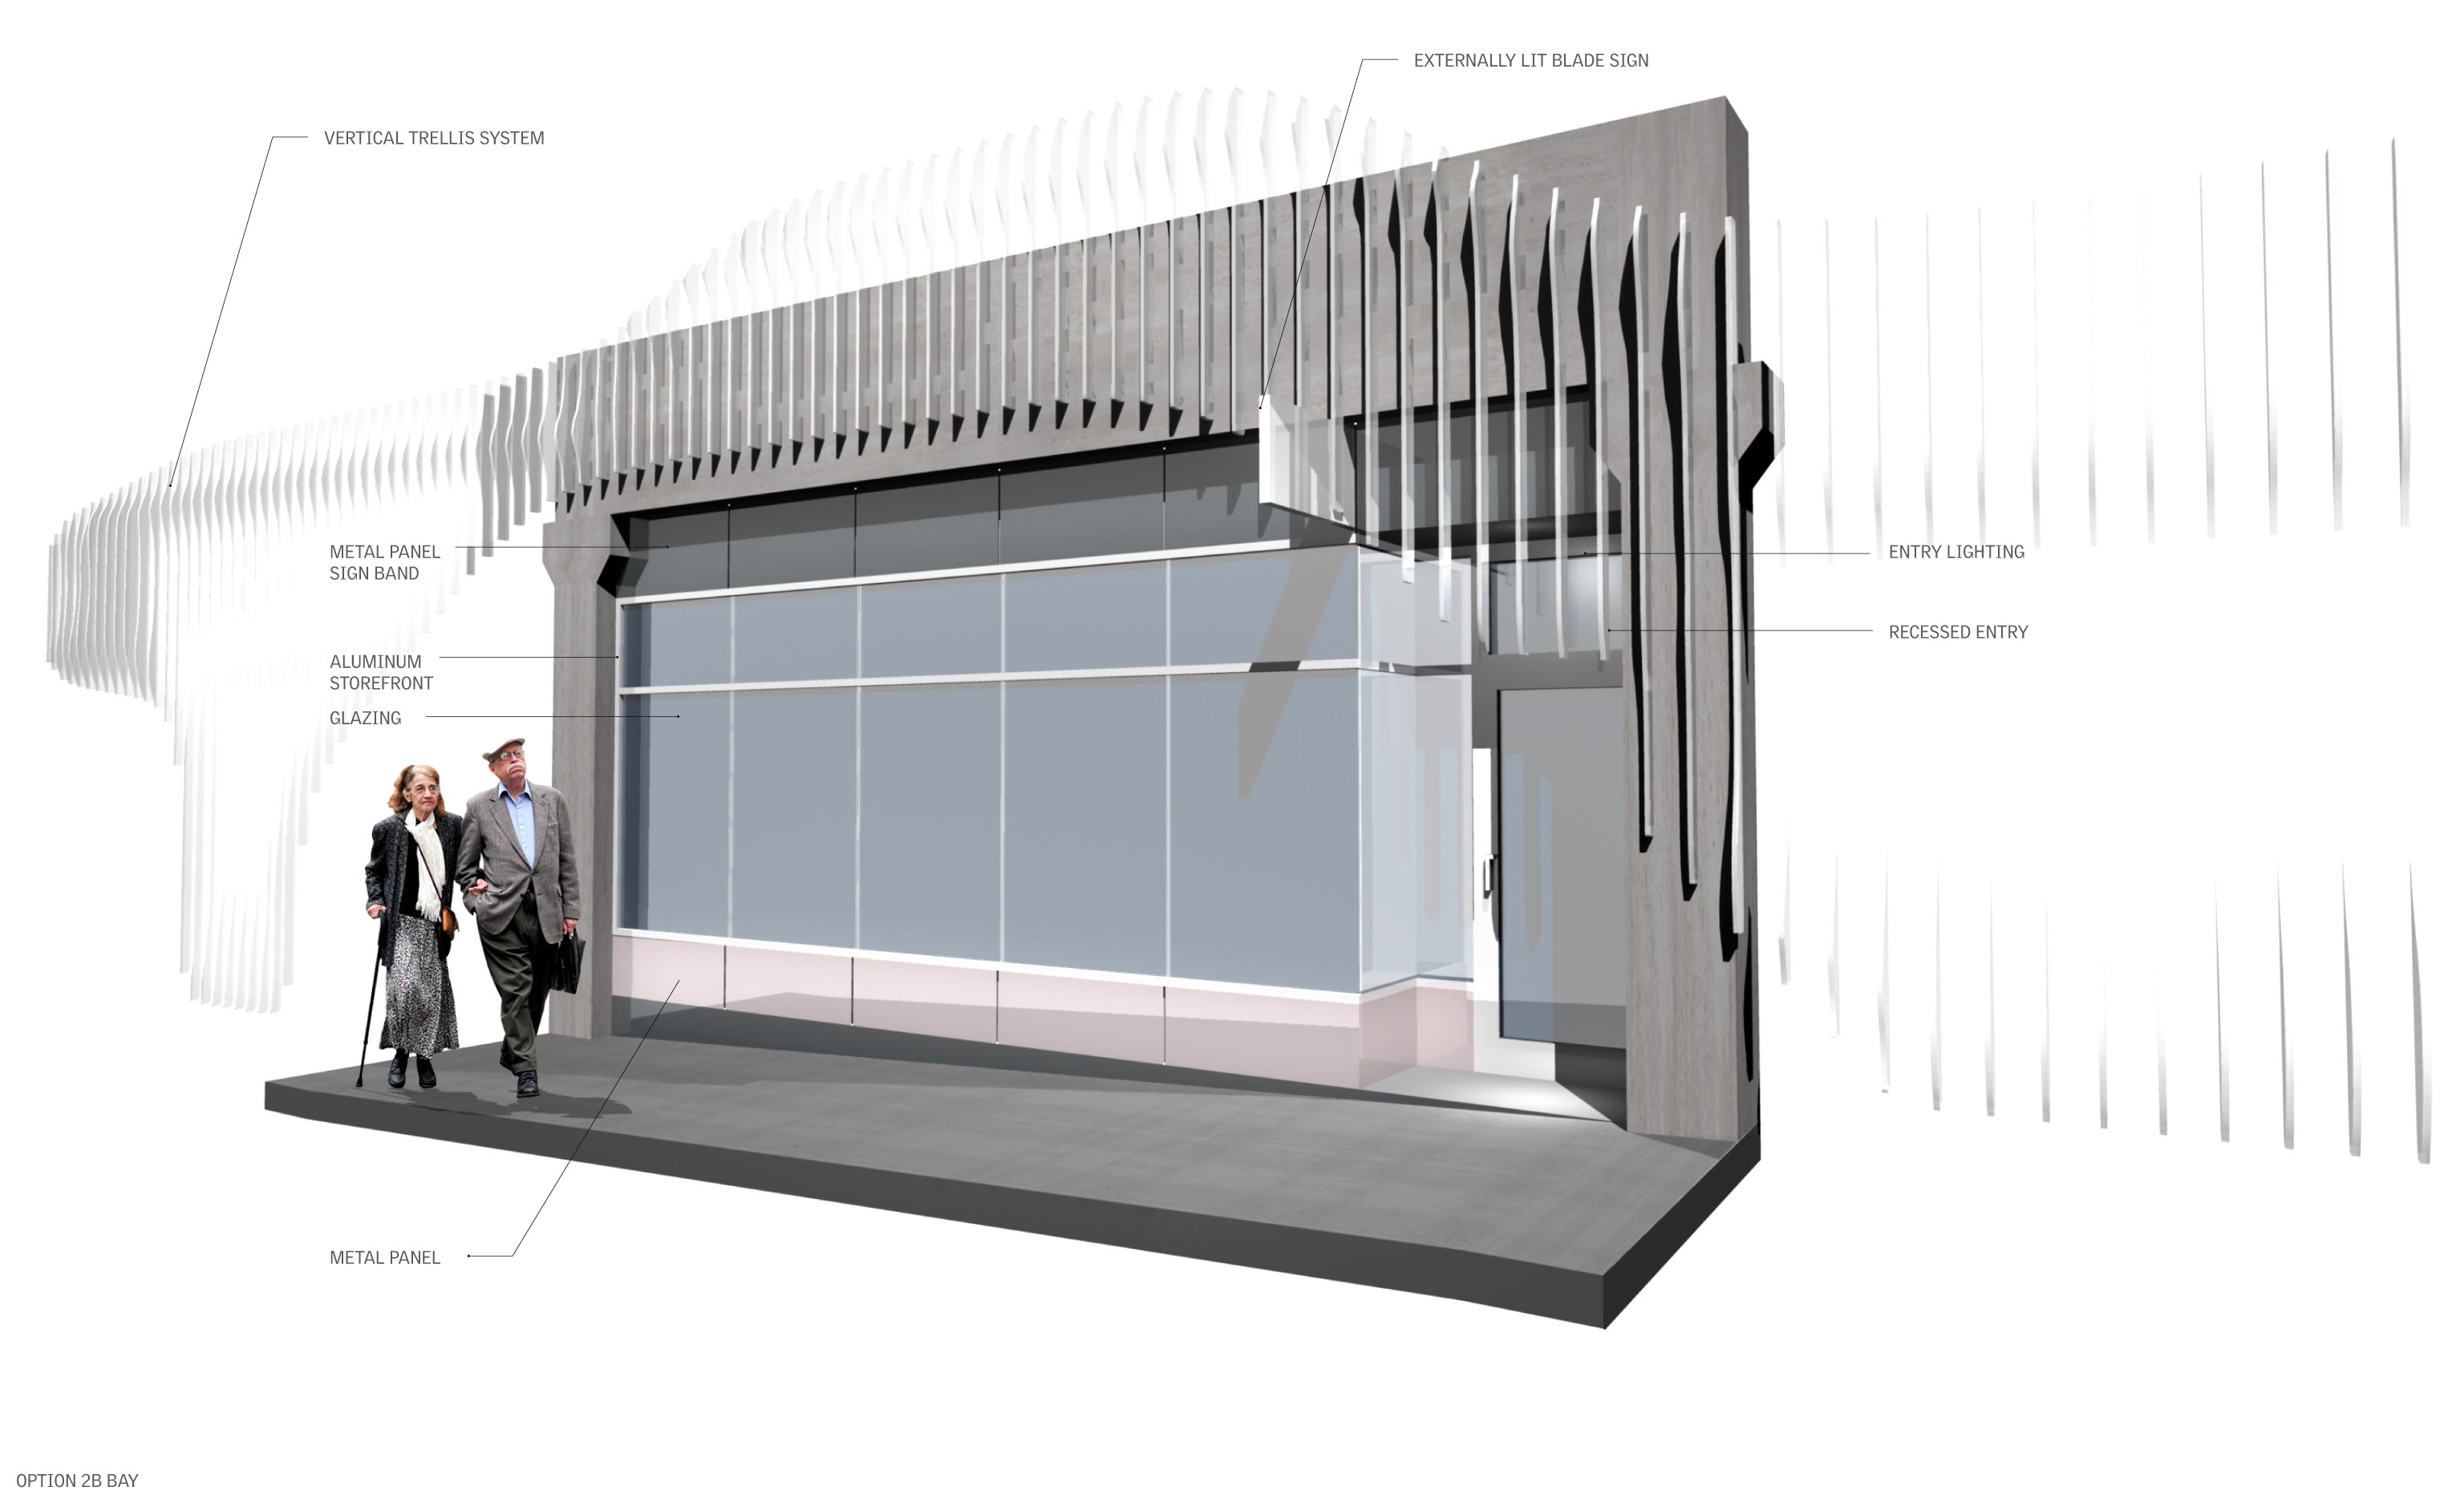 Thurlow Small » Garage Storefront Facade